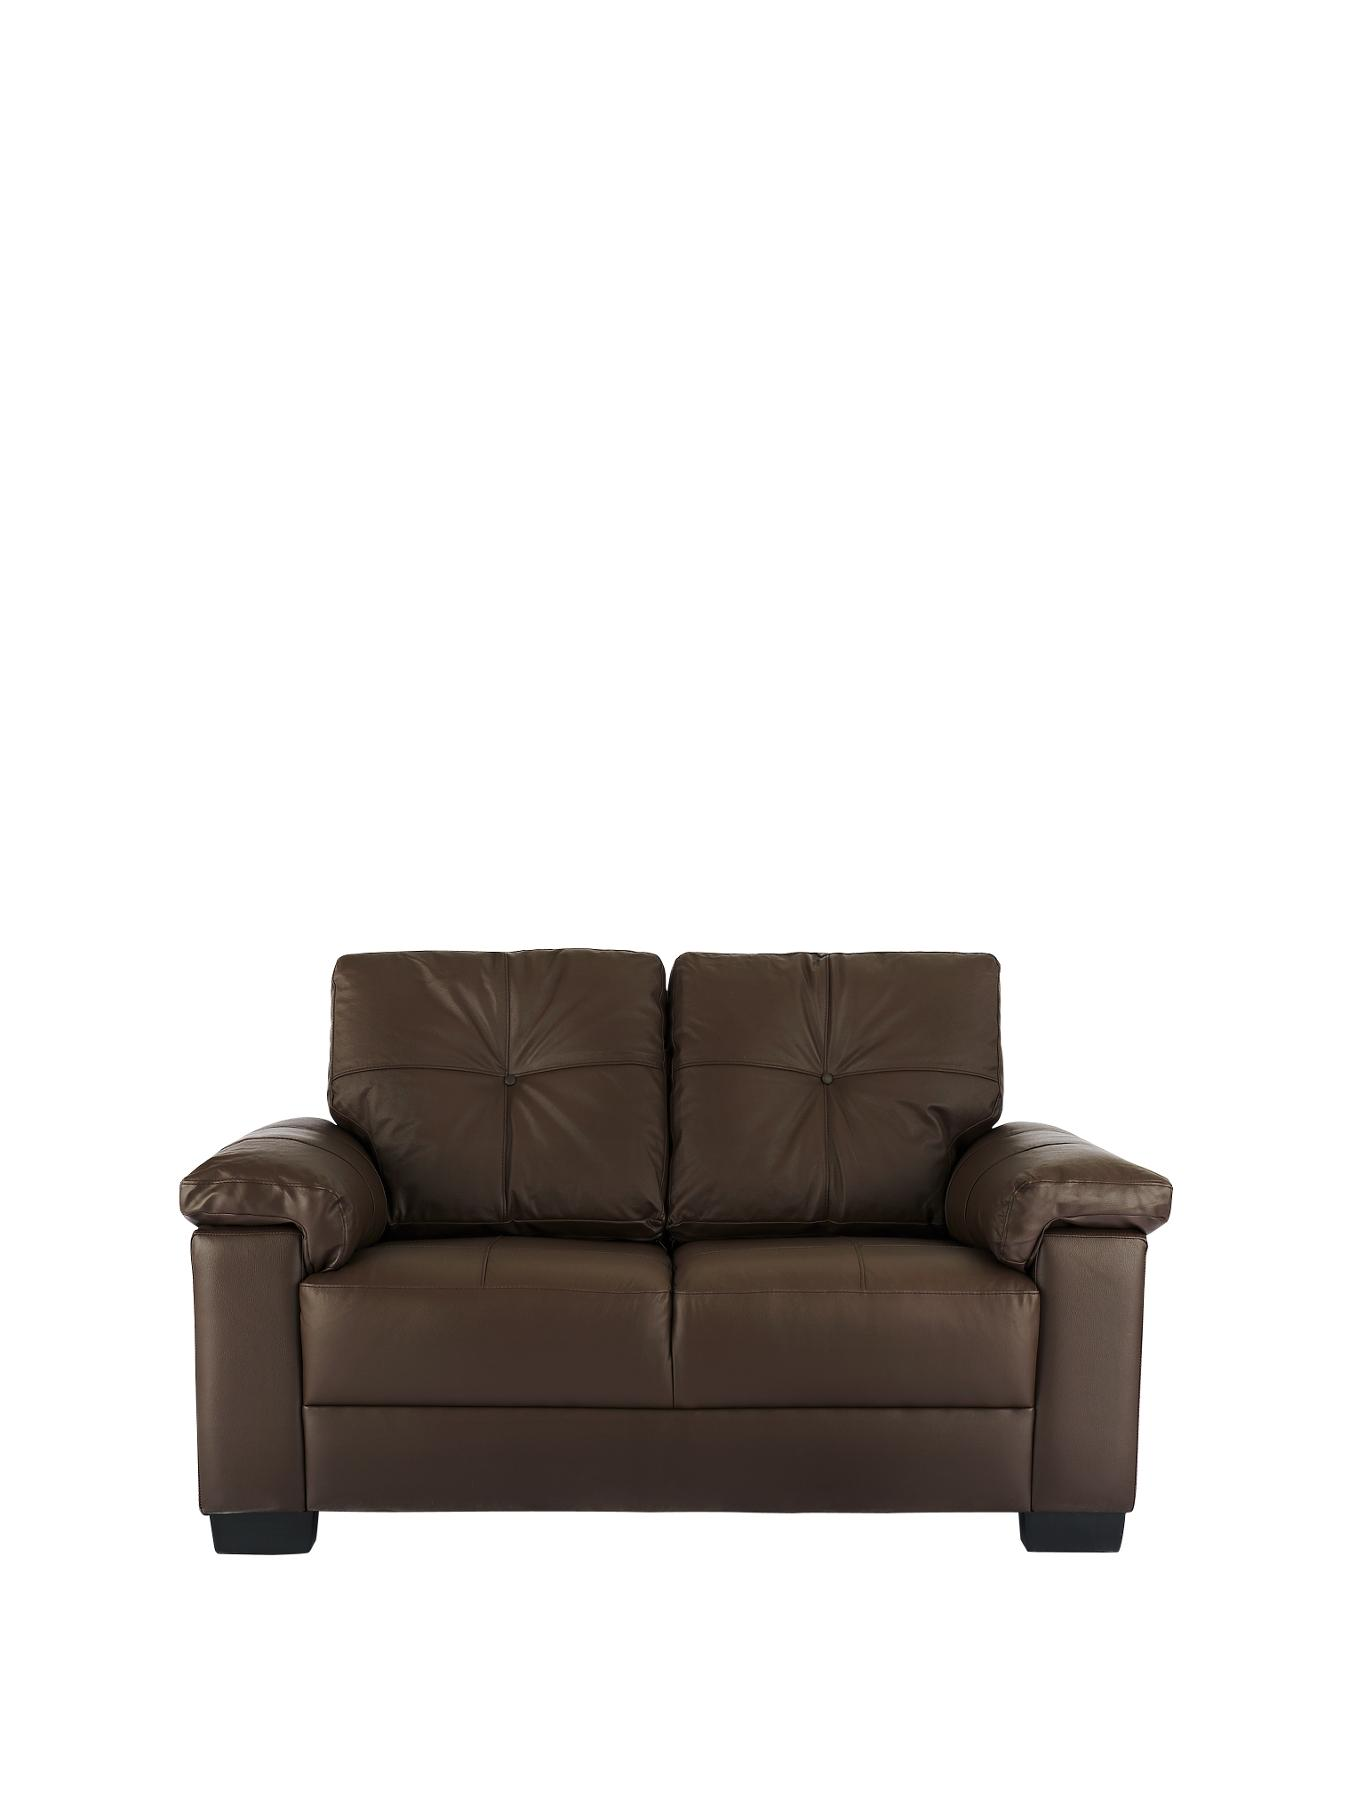 Alberta 2-Seater Sofa - Chocolate, Chocolate,Black